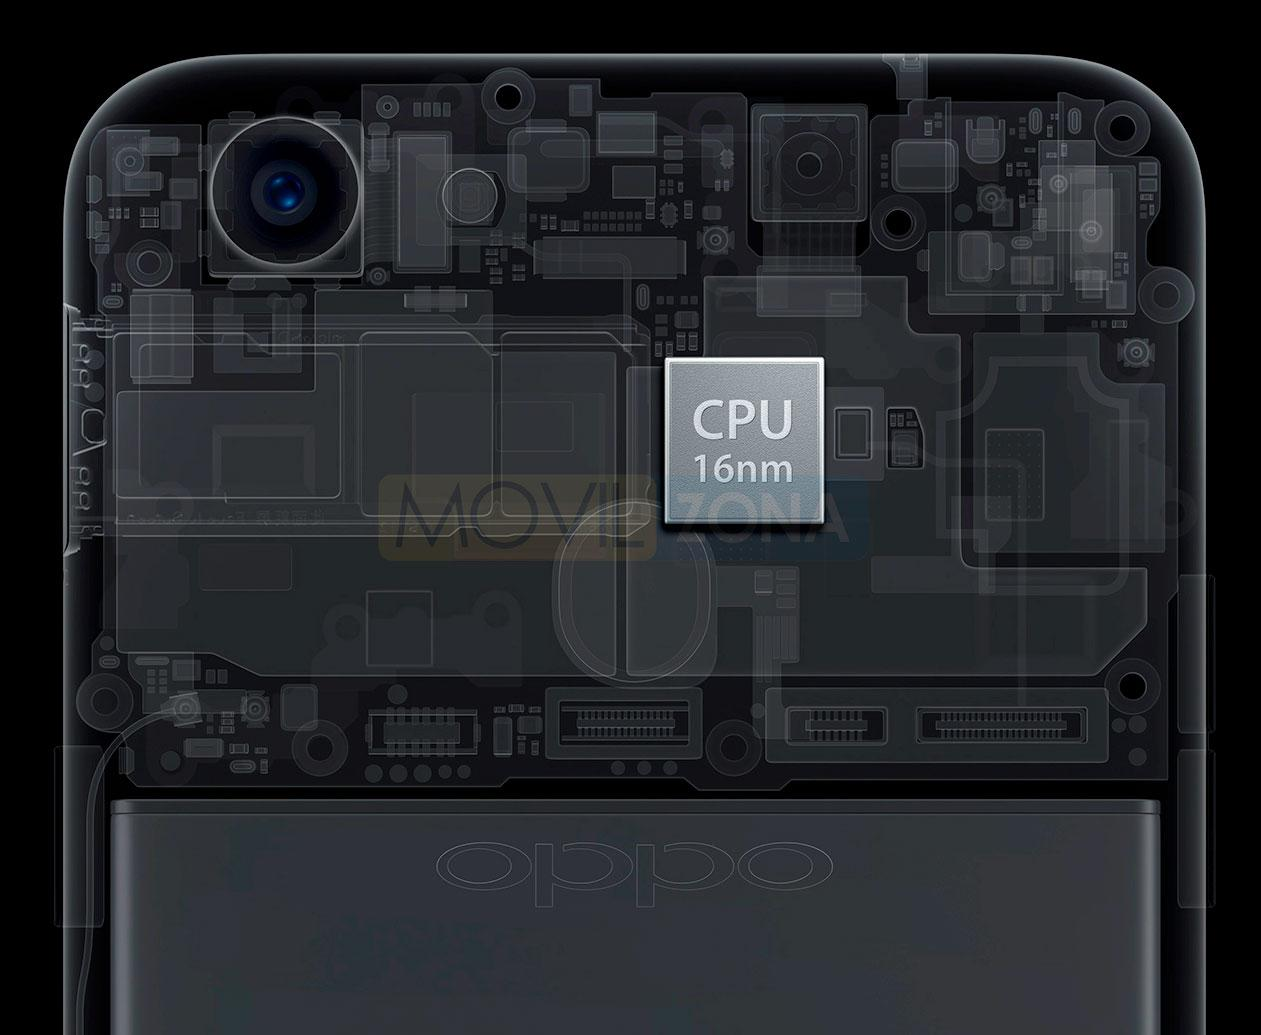 Oppo F5 Youth procesador